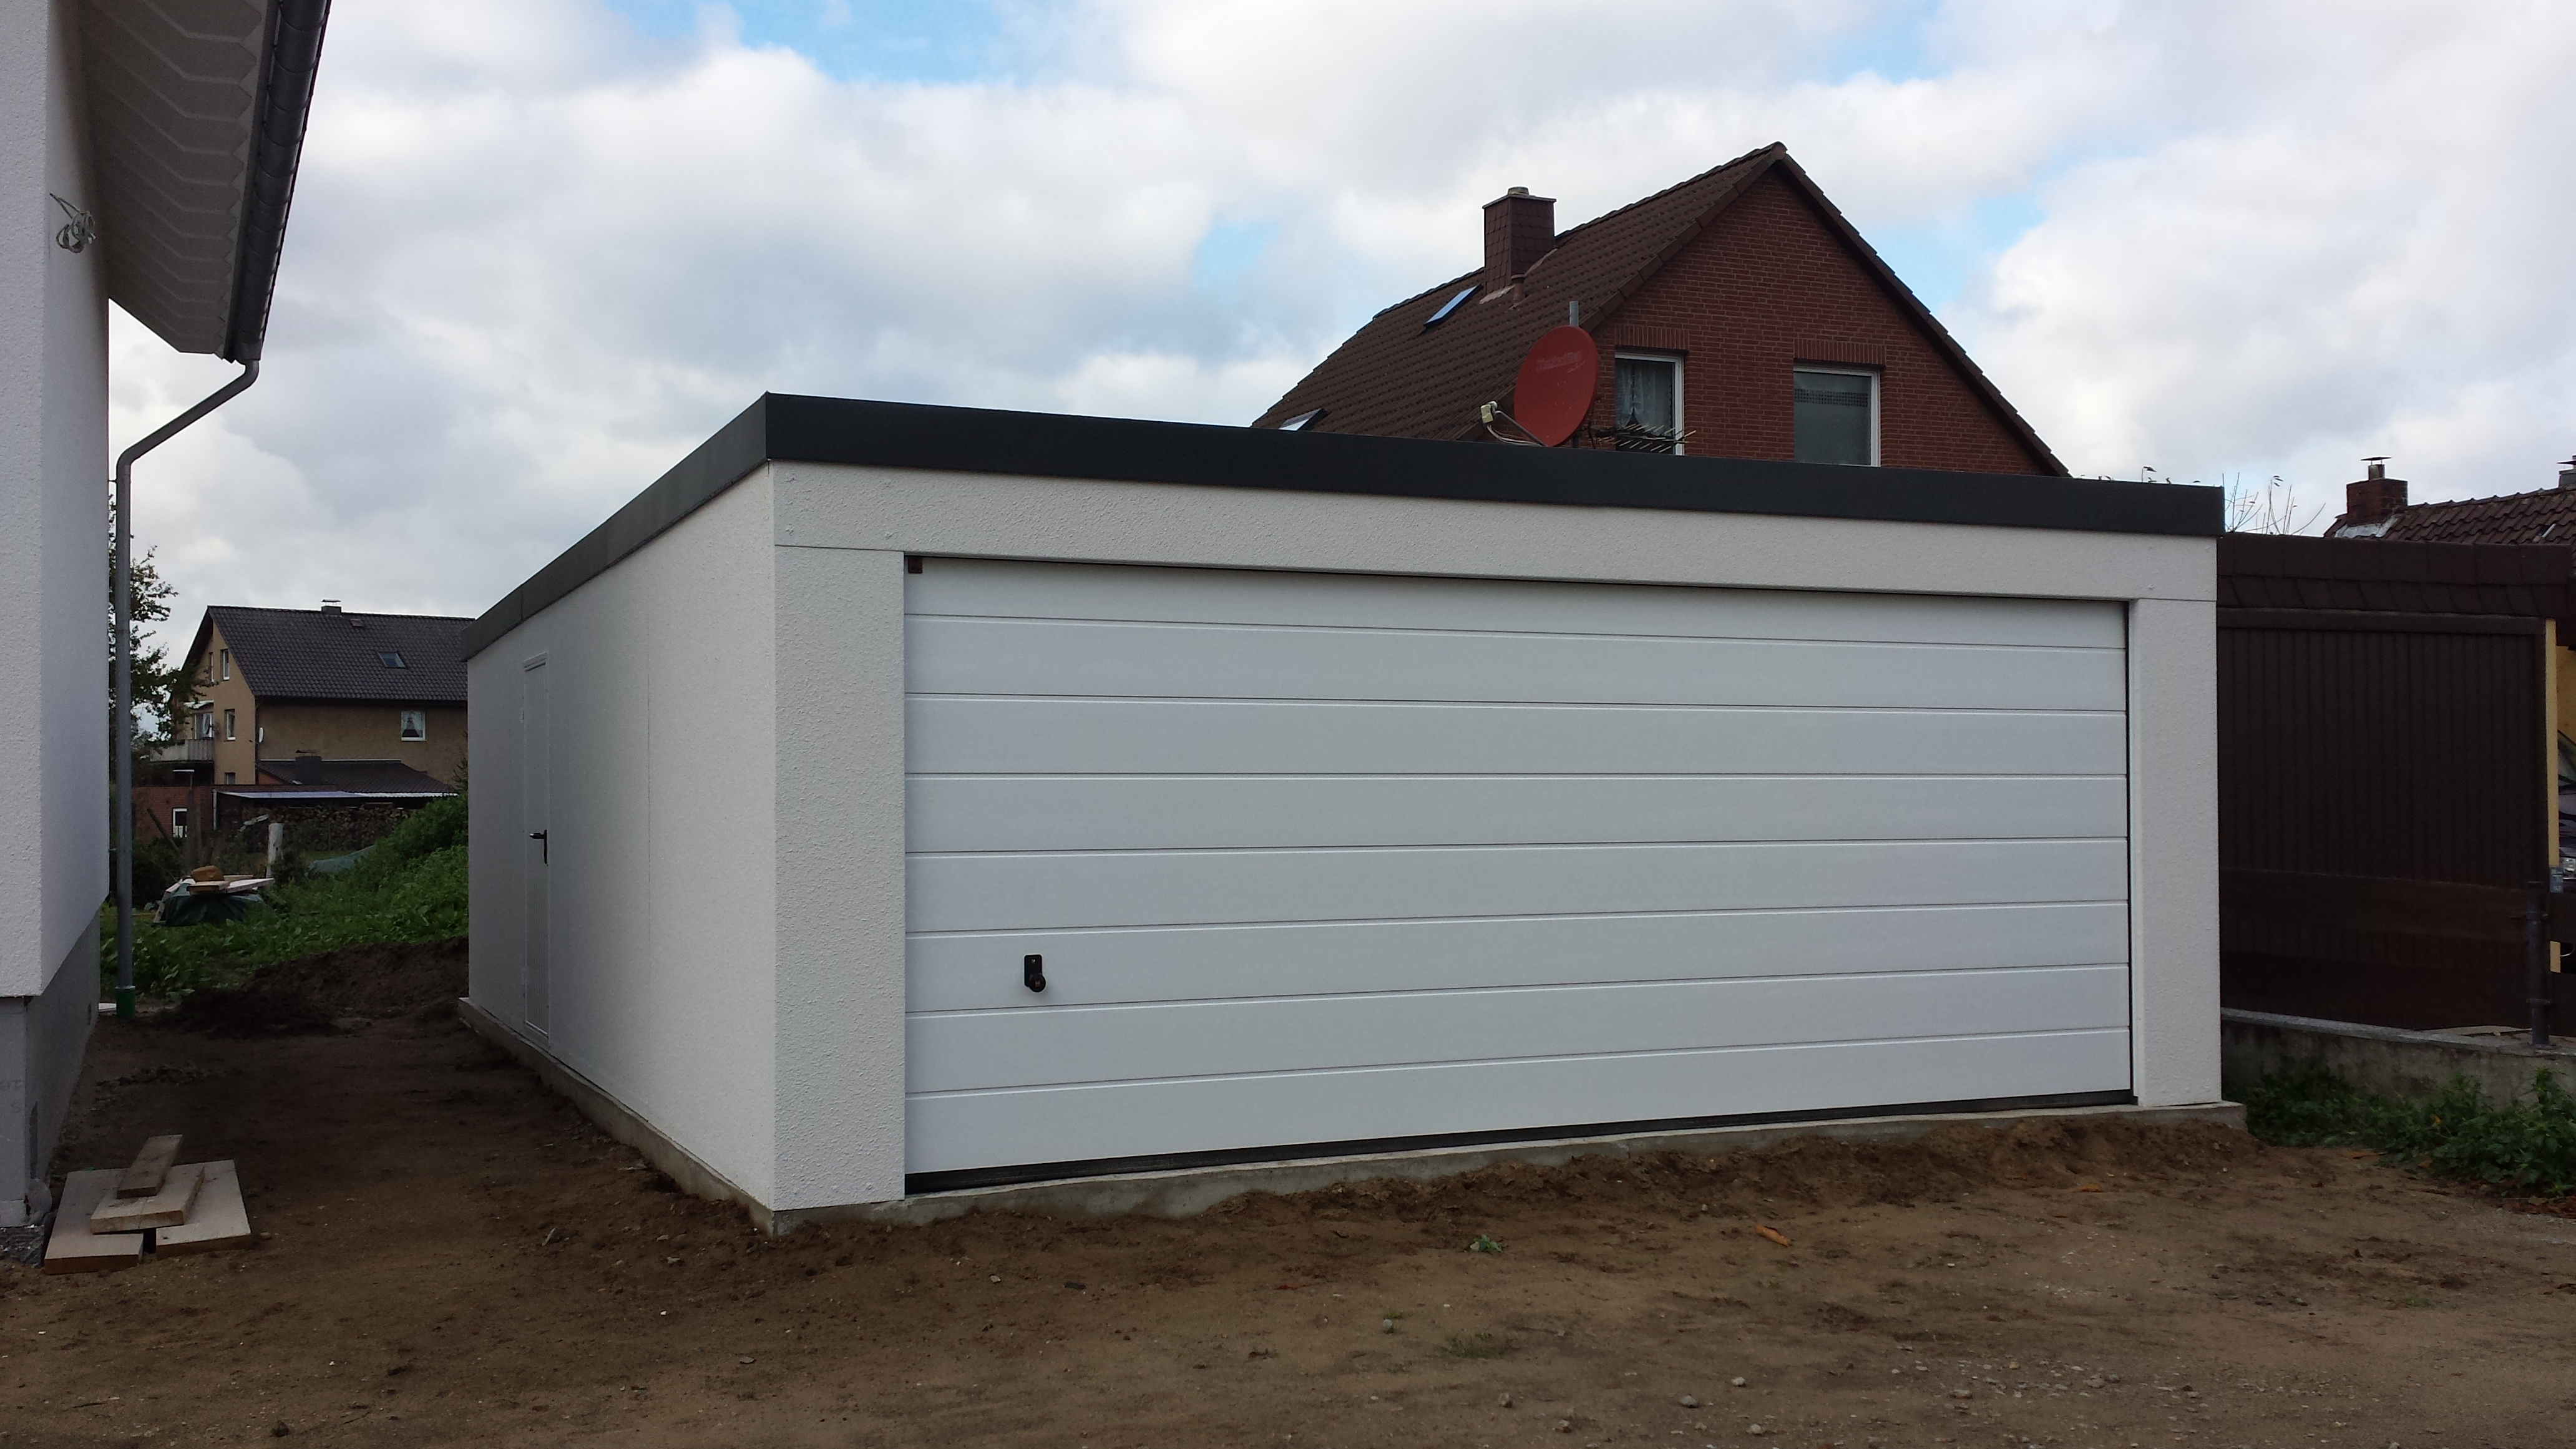 Garage 6x6m garage 6x6m olympic industries gable garages adelaide our domestic